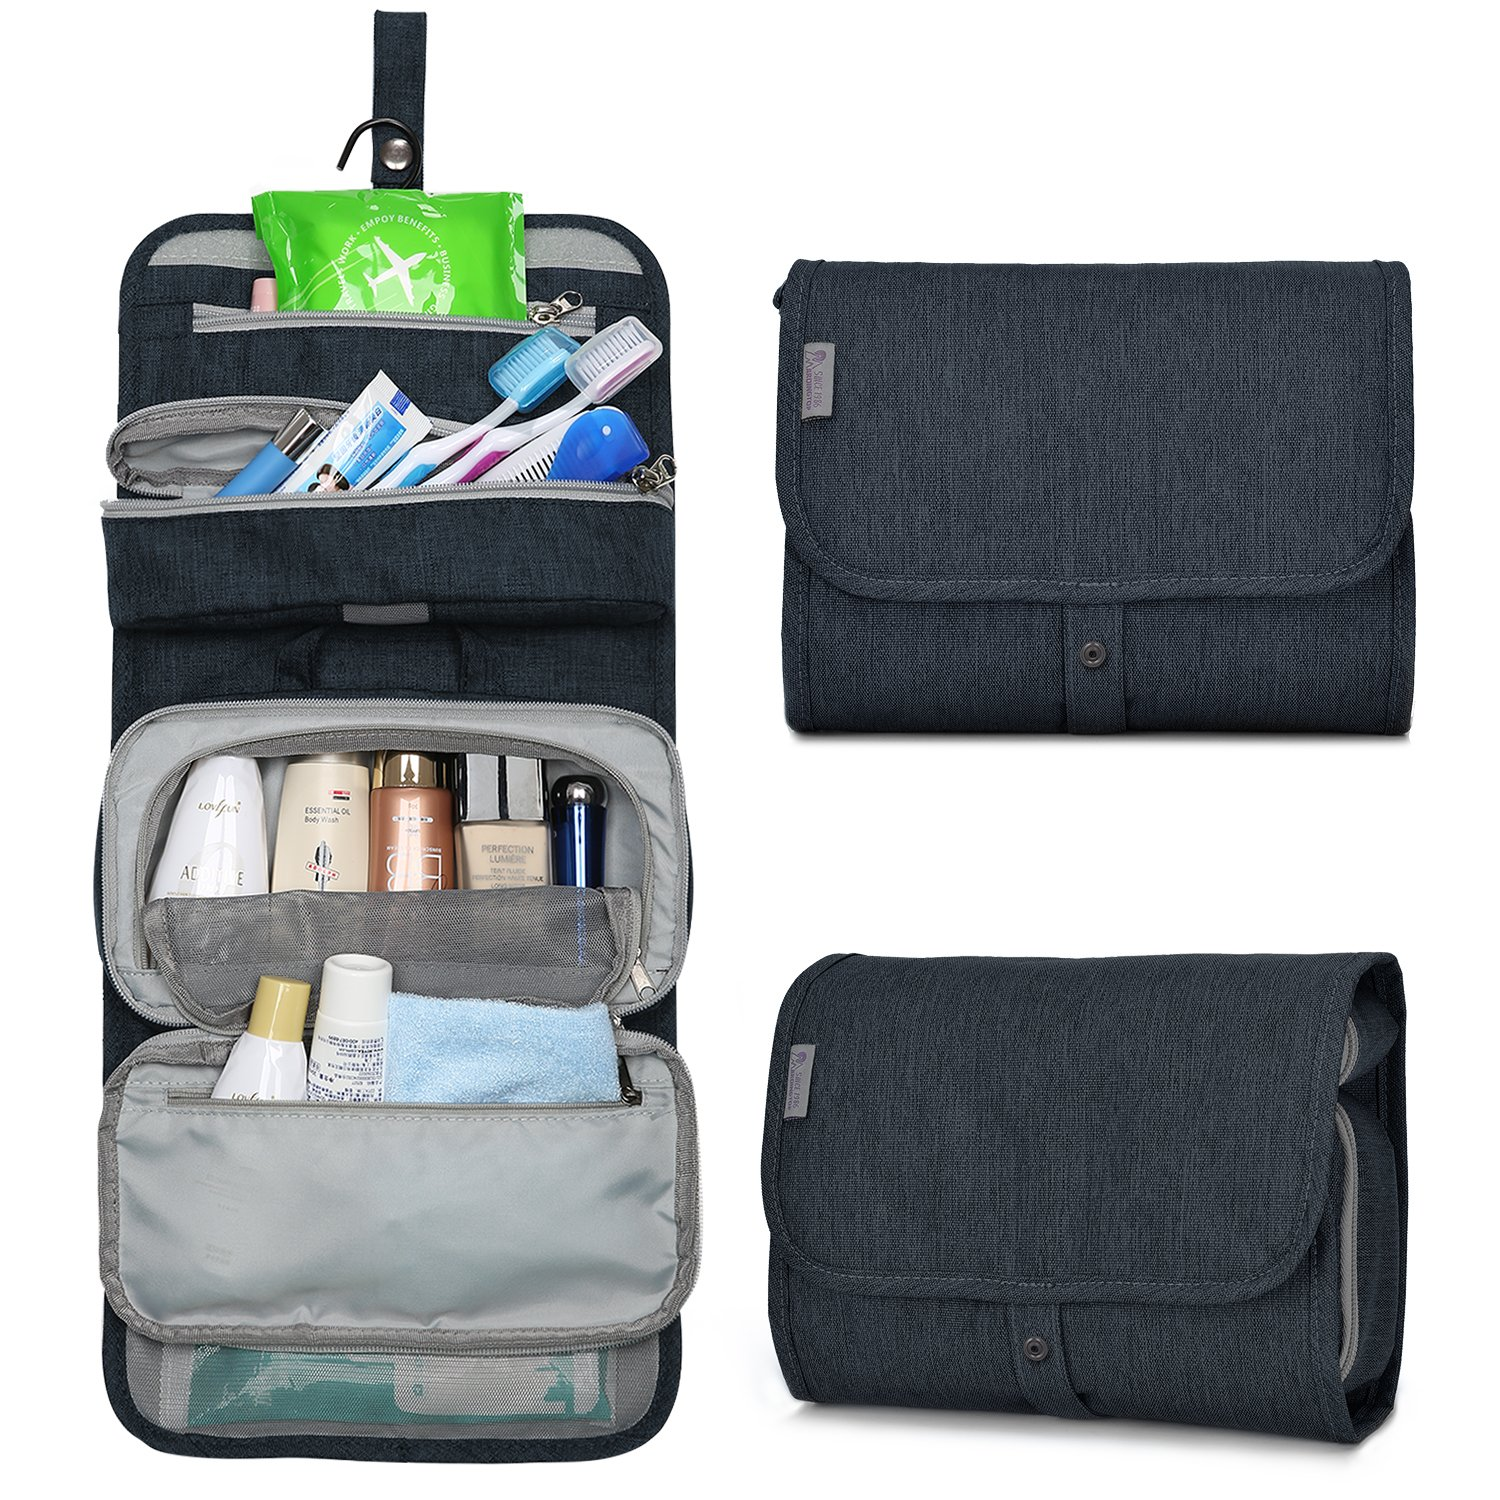 Mountaintop Hanging Travel Toiletry Bag, 7.1 x 2.4 x 9.3-Inch For Men & Women by Mountaintop (Image #1)